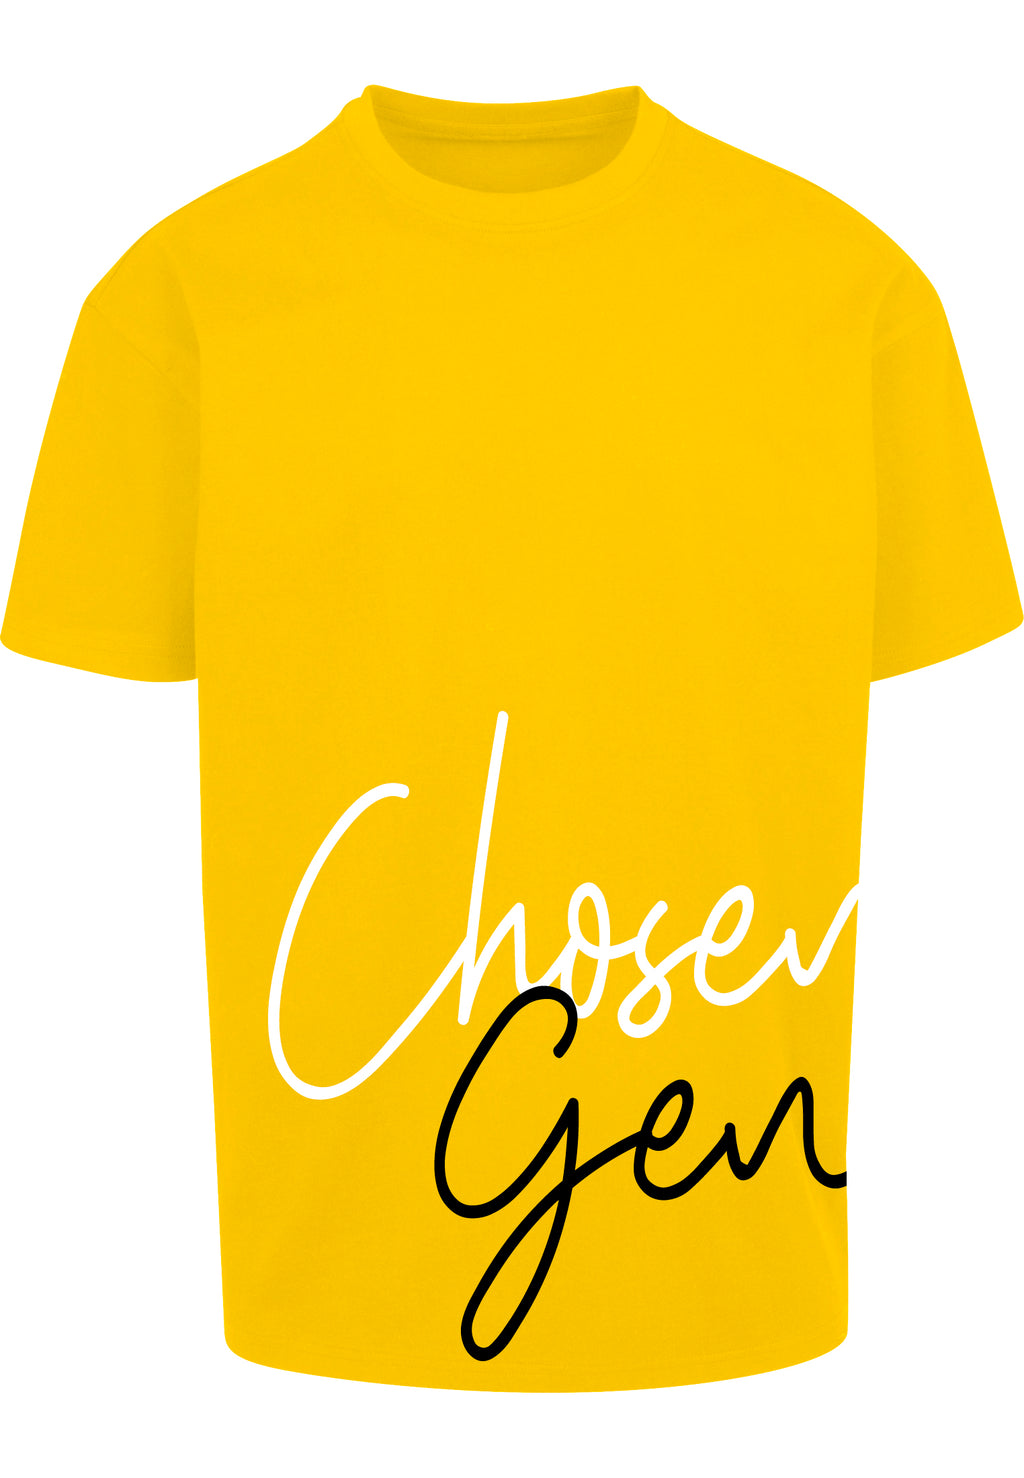 CHOSEN GEN Unisex Oversized T-Shirt (Yellow 2T)